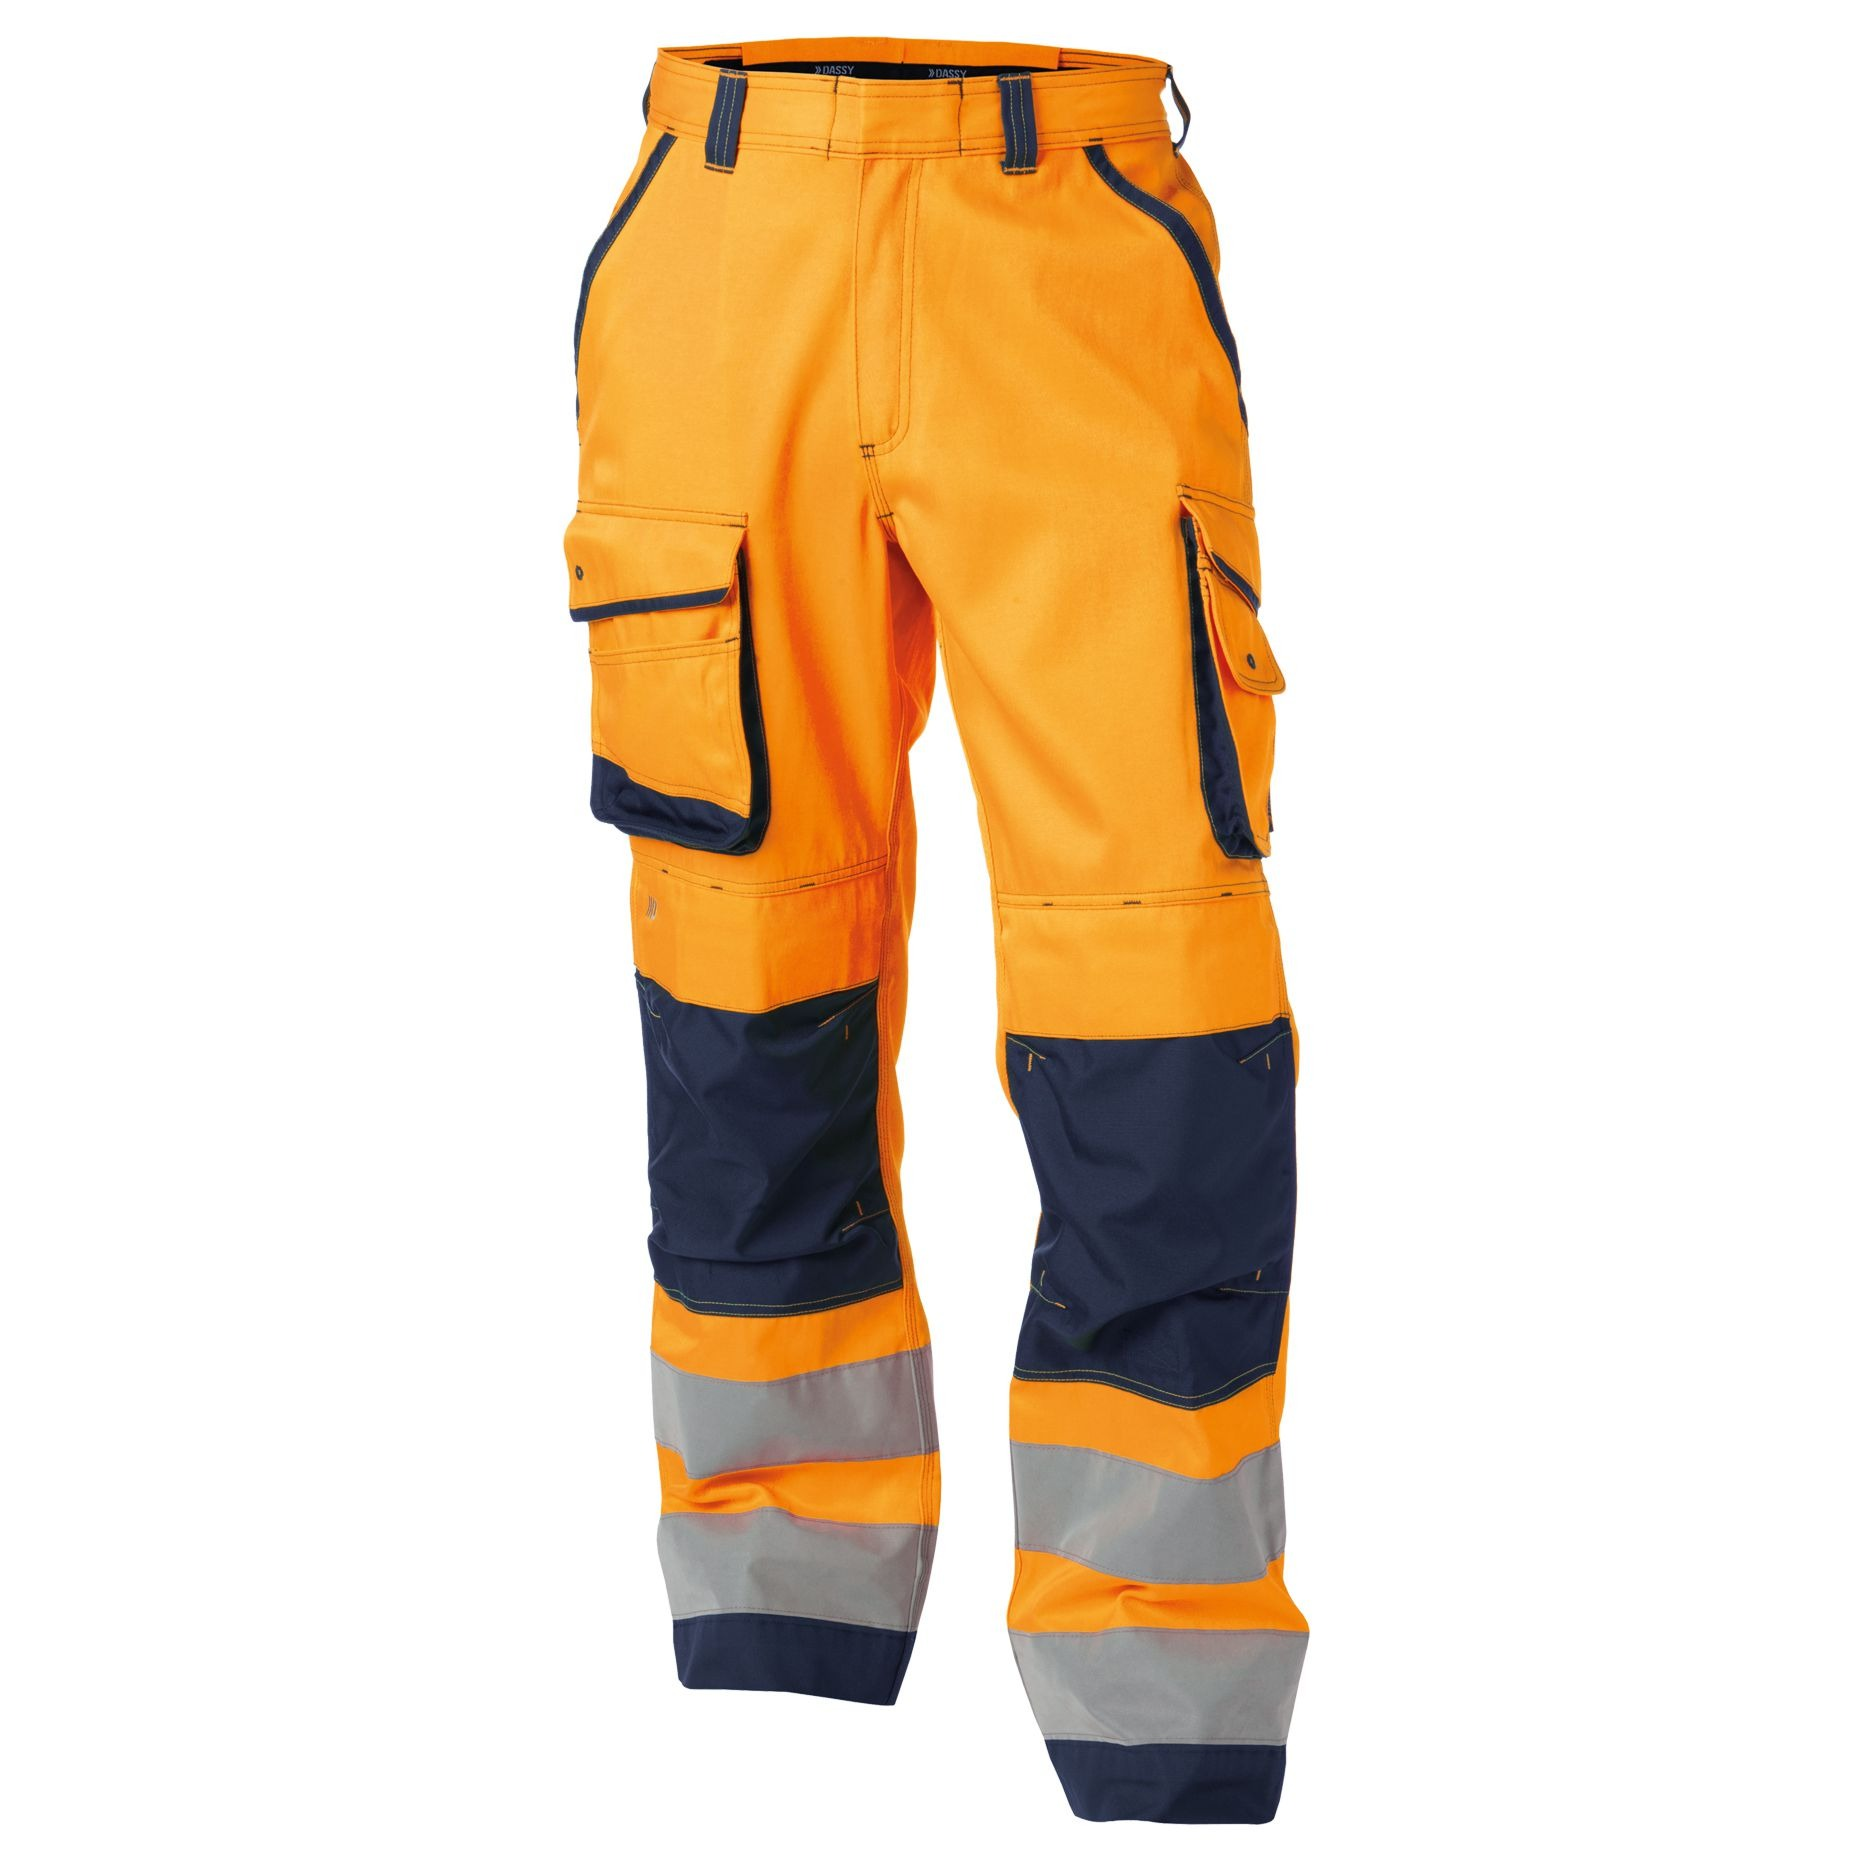 seidel_produkte_warnschutz_bundhose_dassy_chicago_orange_blau_front